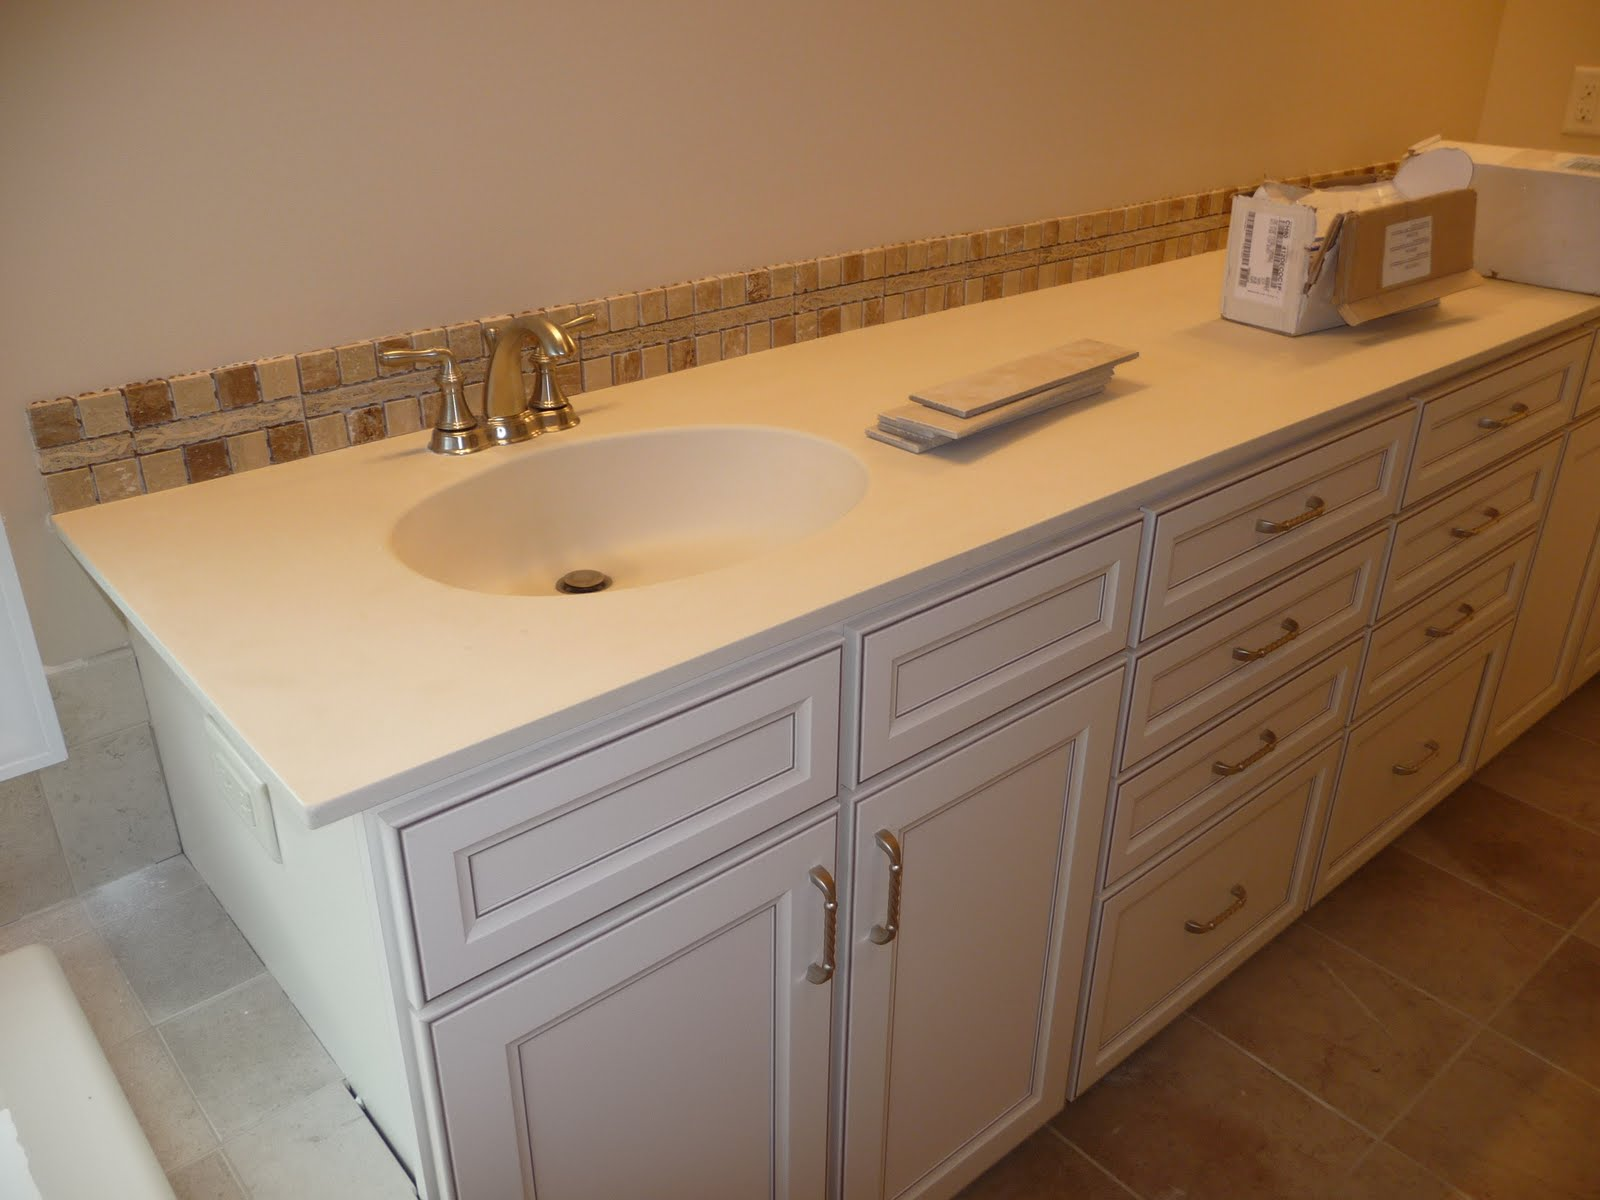 Brooklyn Kitchen Cabinets Moving On Up To Maple Grove Minnesota June 25th Part 3